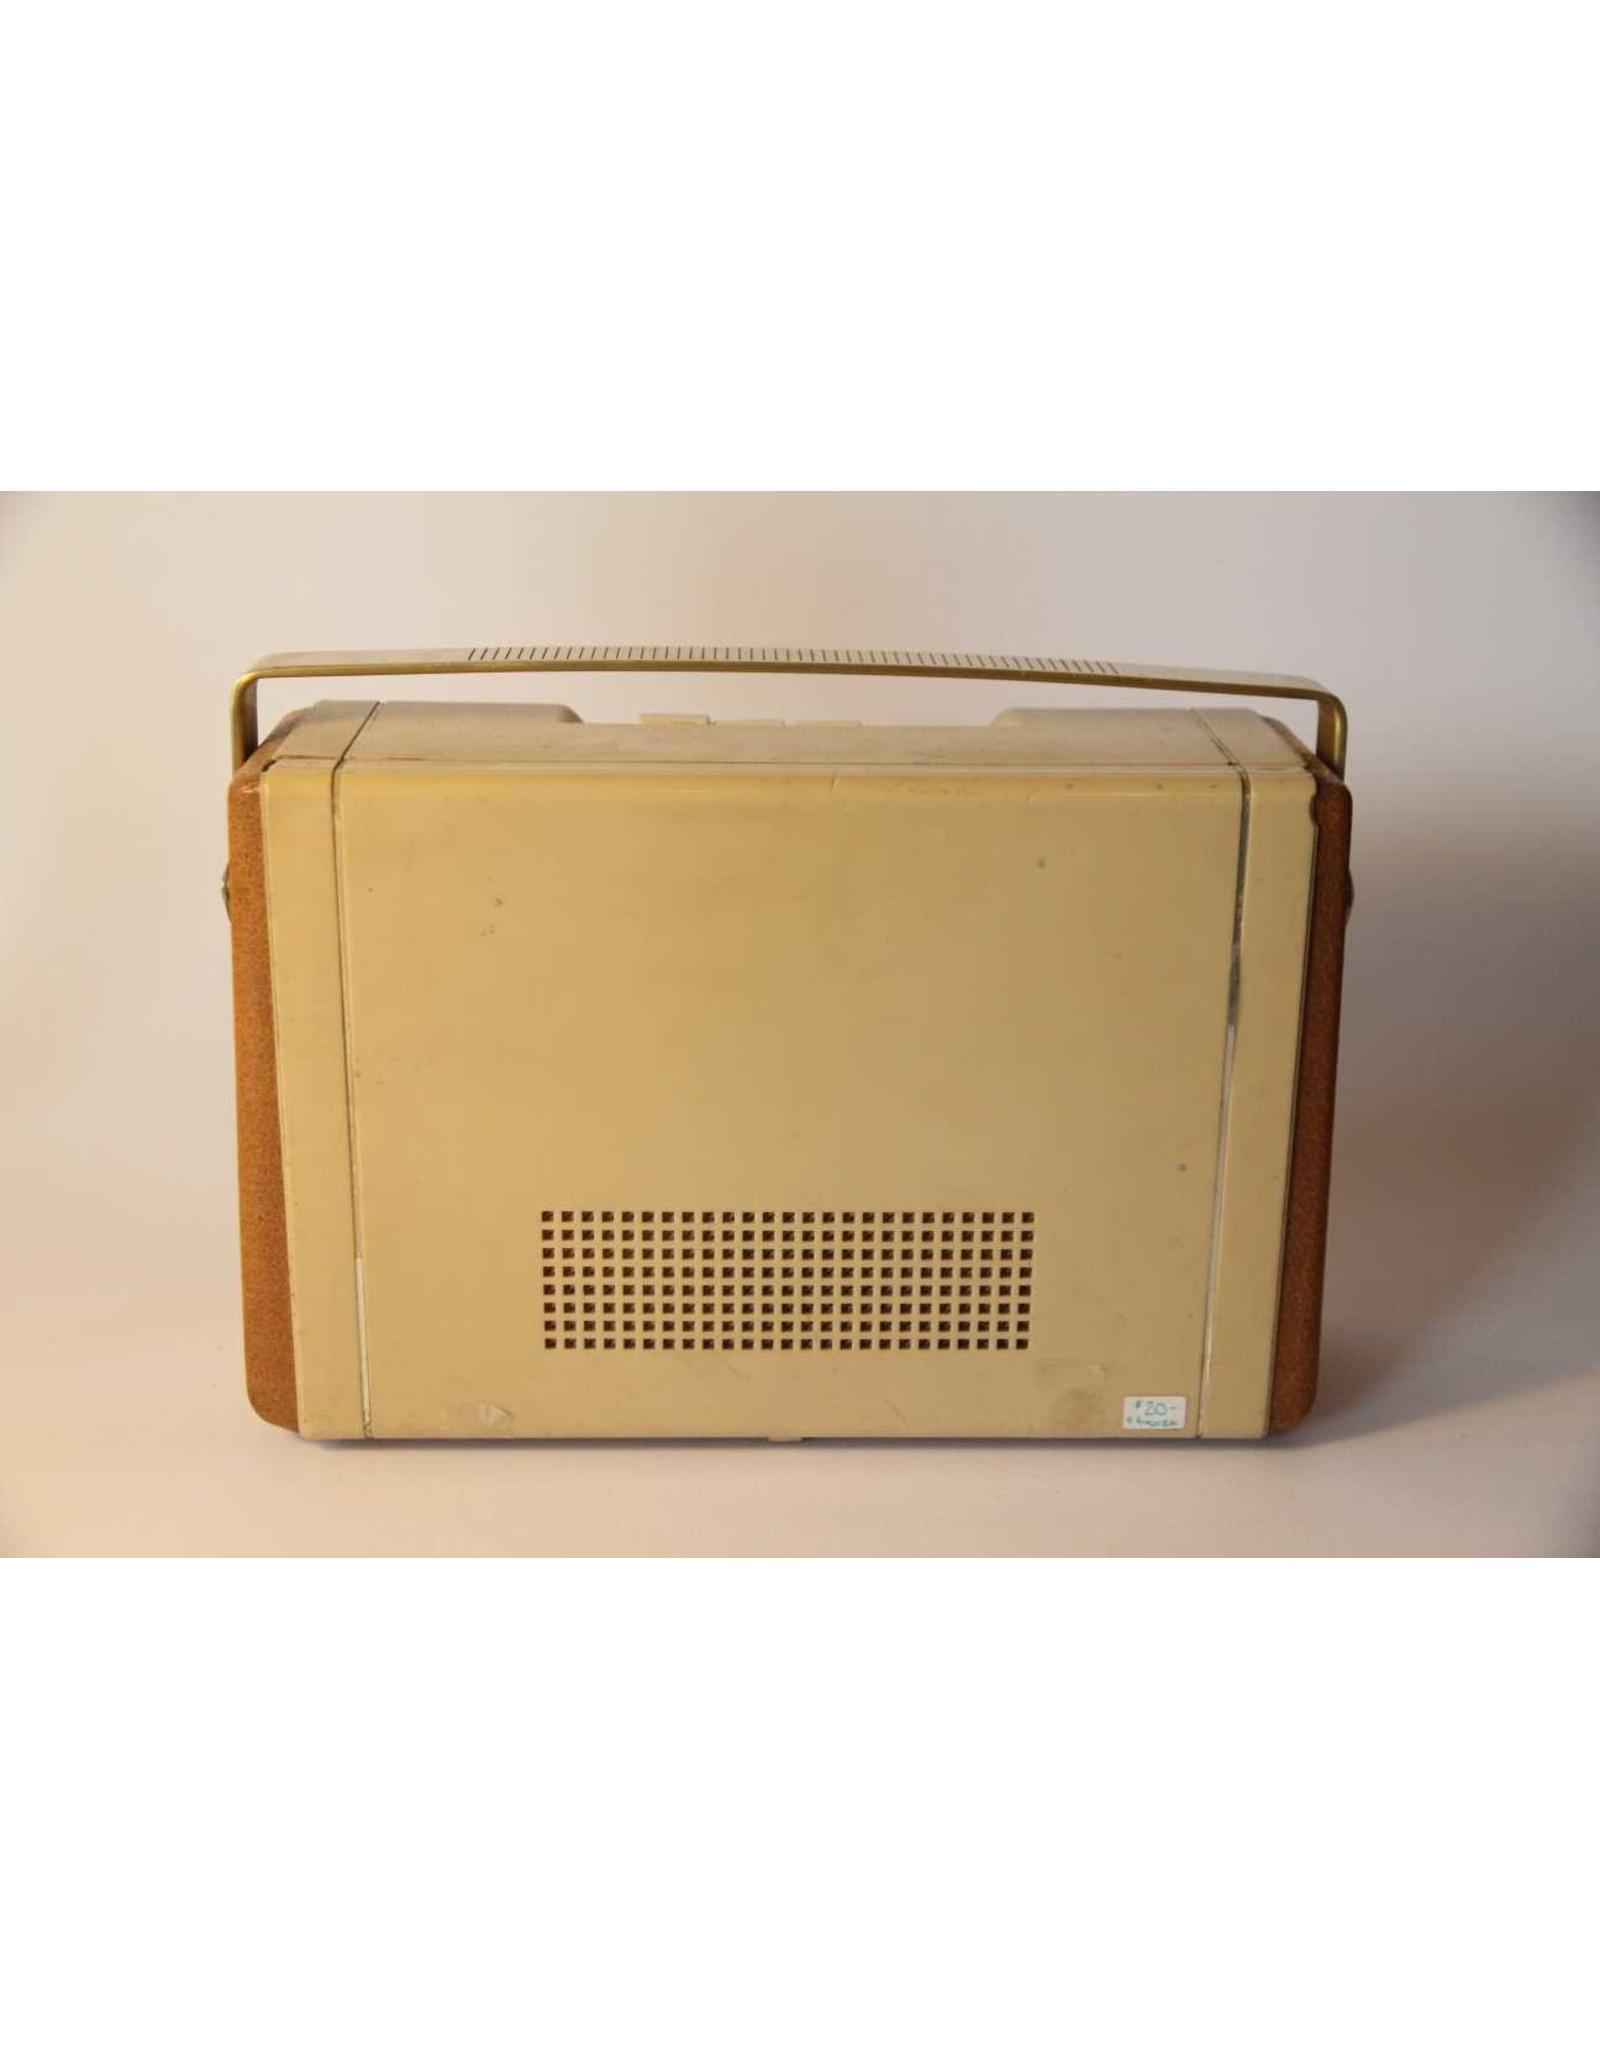 Philips radio, as is